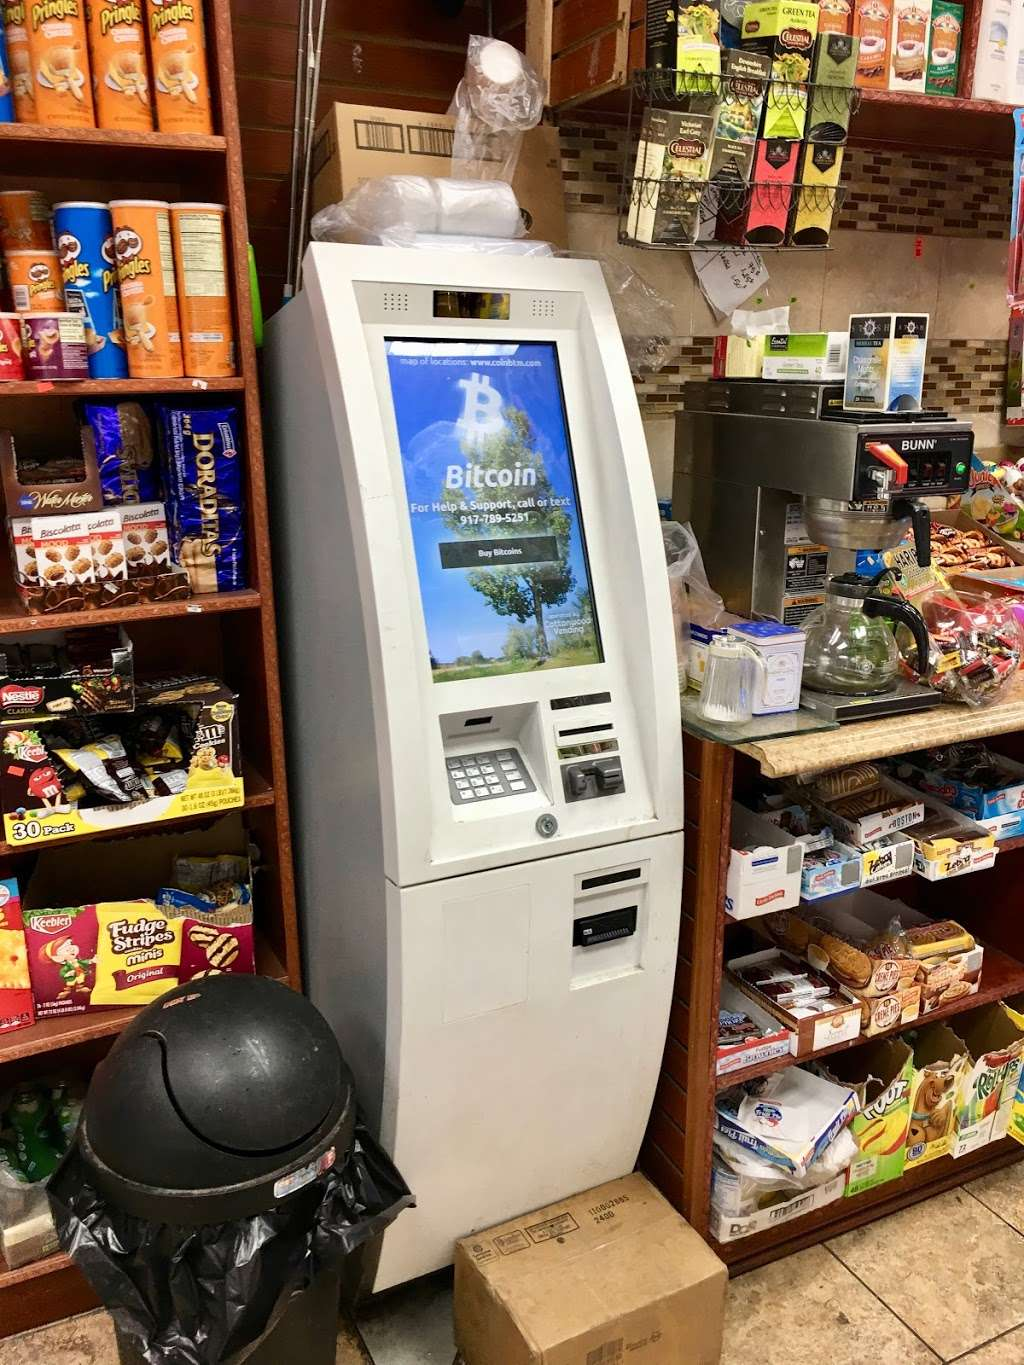 CoinBTM - Bitcoin ATM - atm  | Photo 8 of 10 | Address: 630 W 207th St, New York, NY 10034, USA | Phone: (917) 789-5251